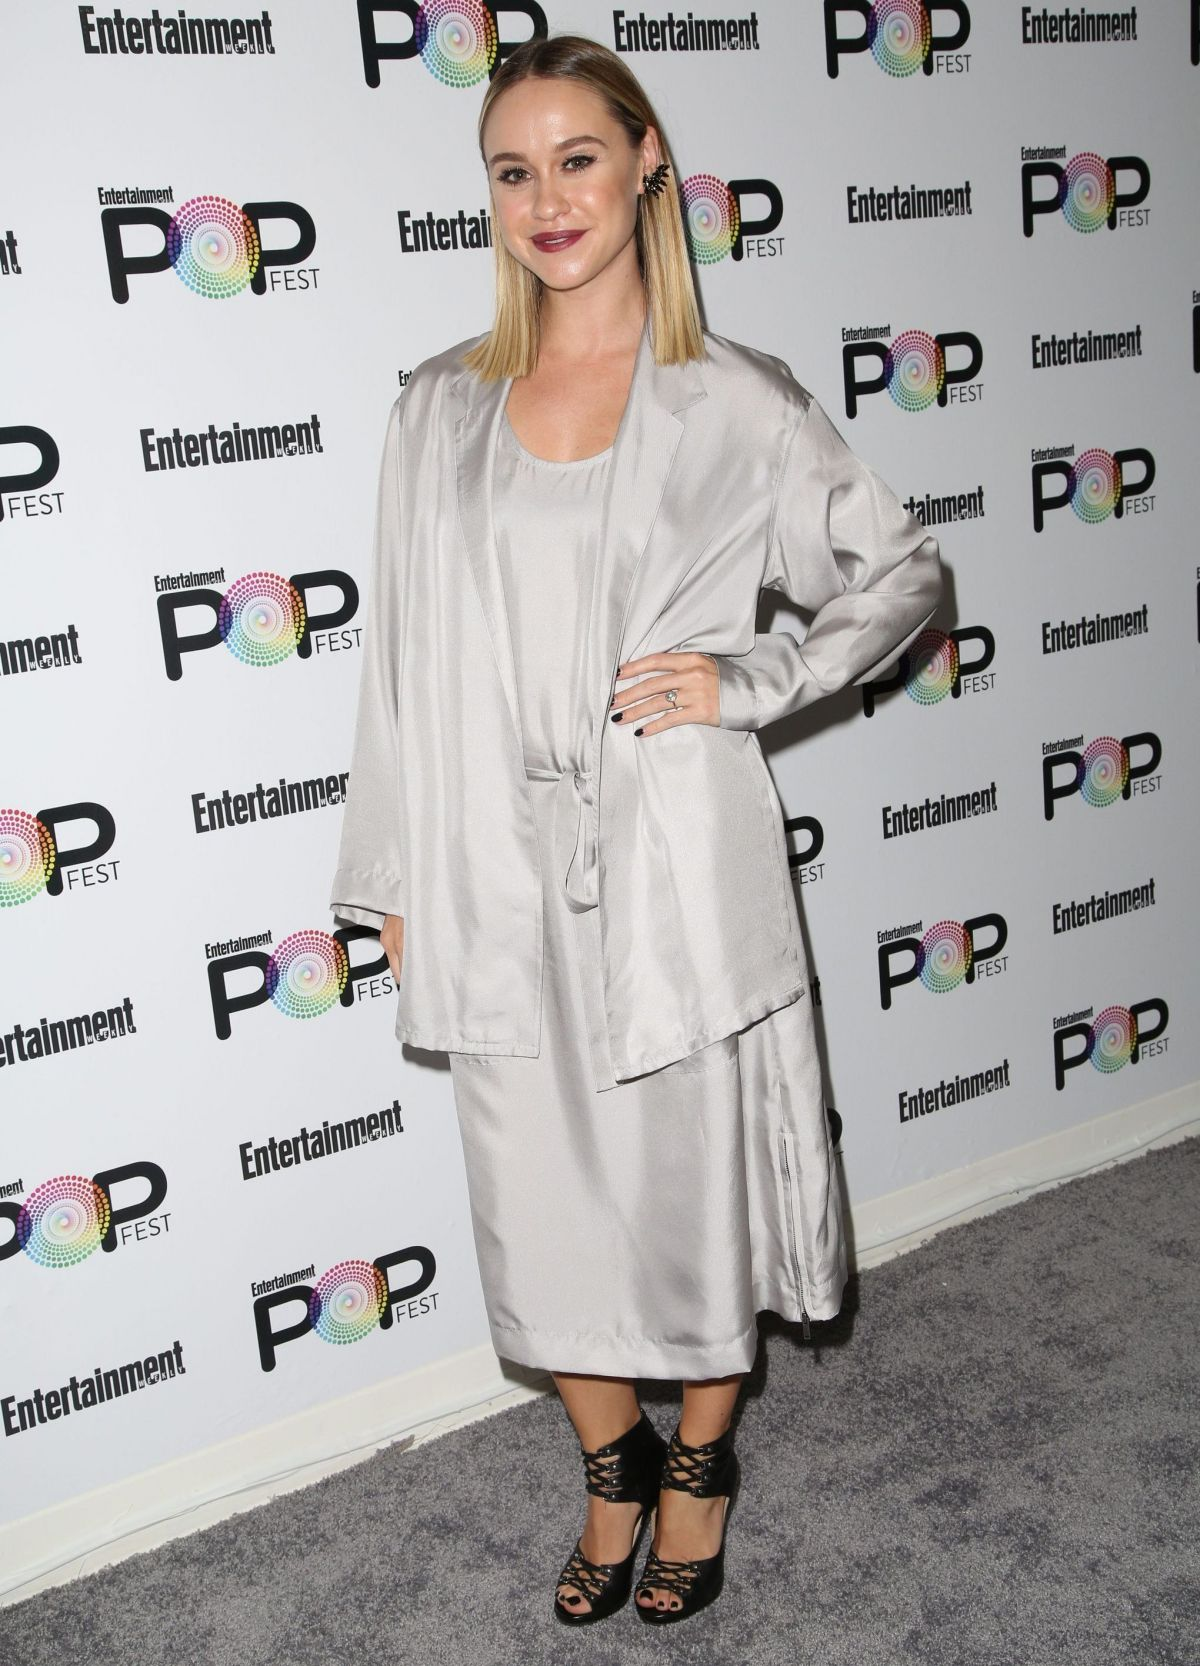 BECCA TOBIN at Entertainment Weekly Popfest in Los Angeles 10/29/2016